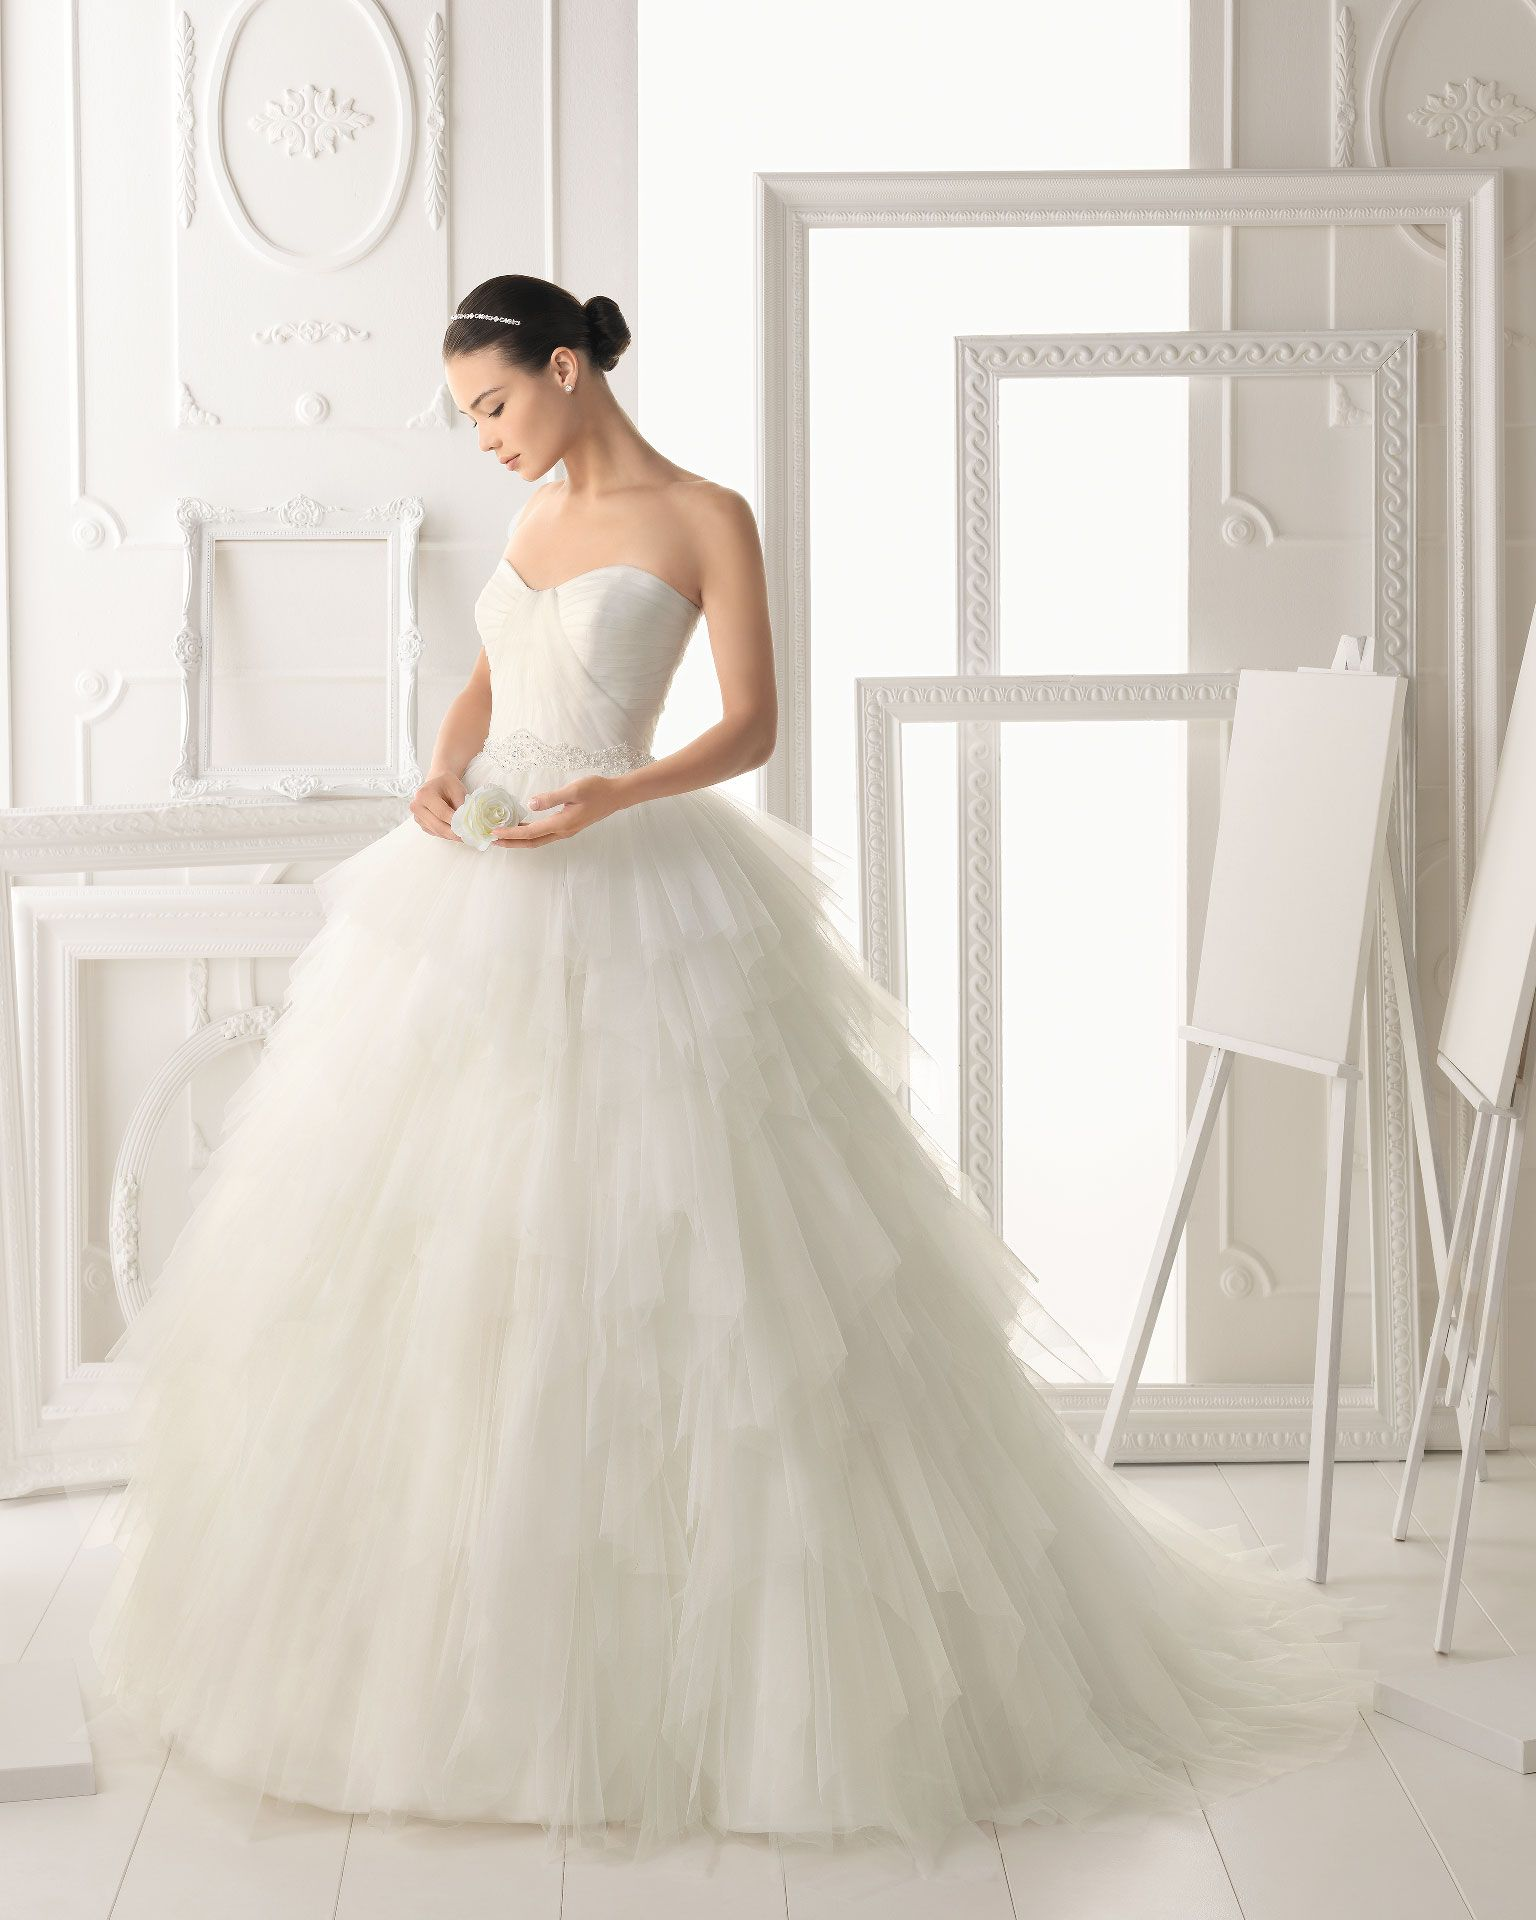 Wedding dresses ball gown lace  OREA  Vestido de tul y encaje con pedrería en color natural